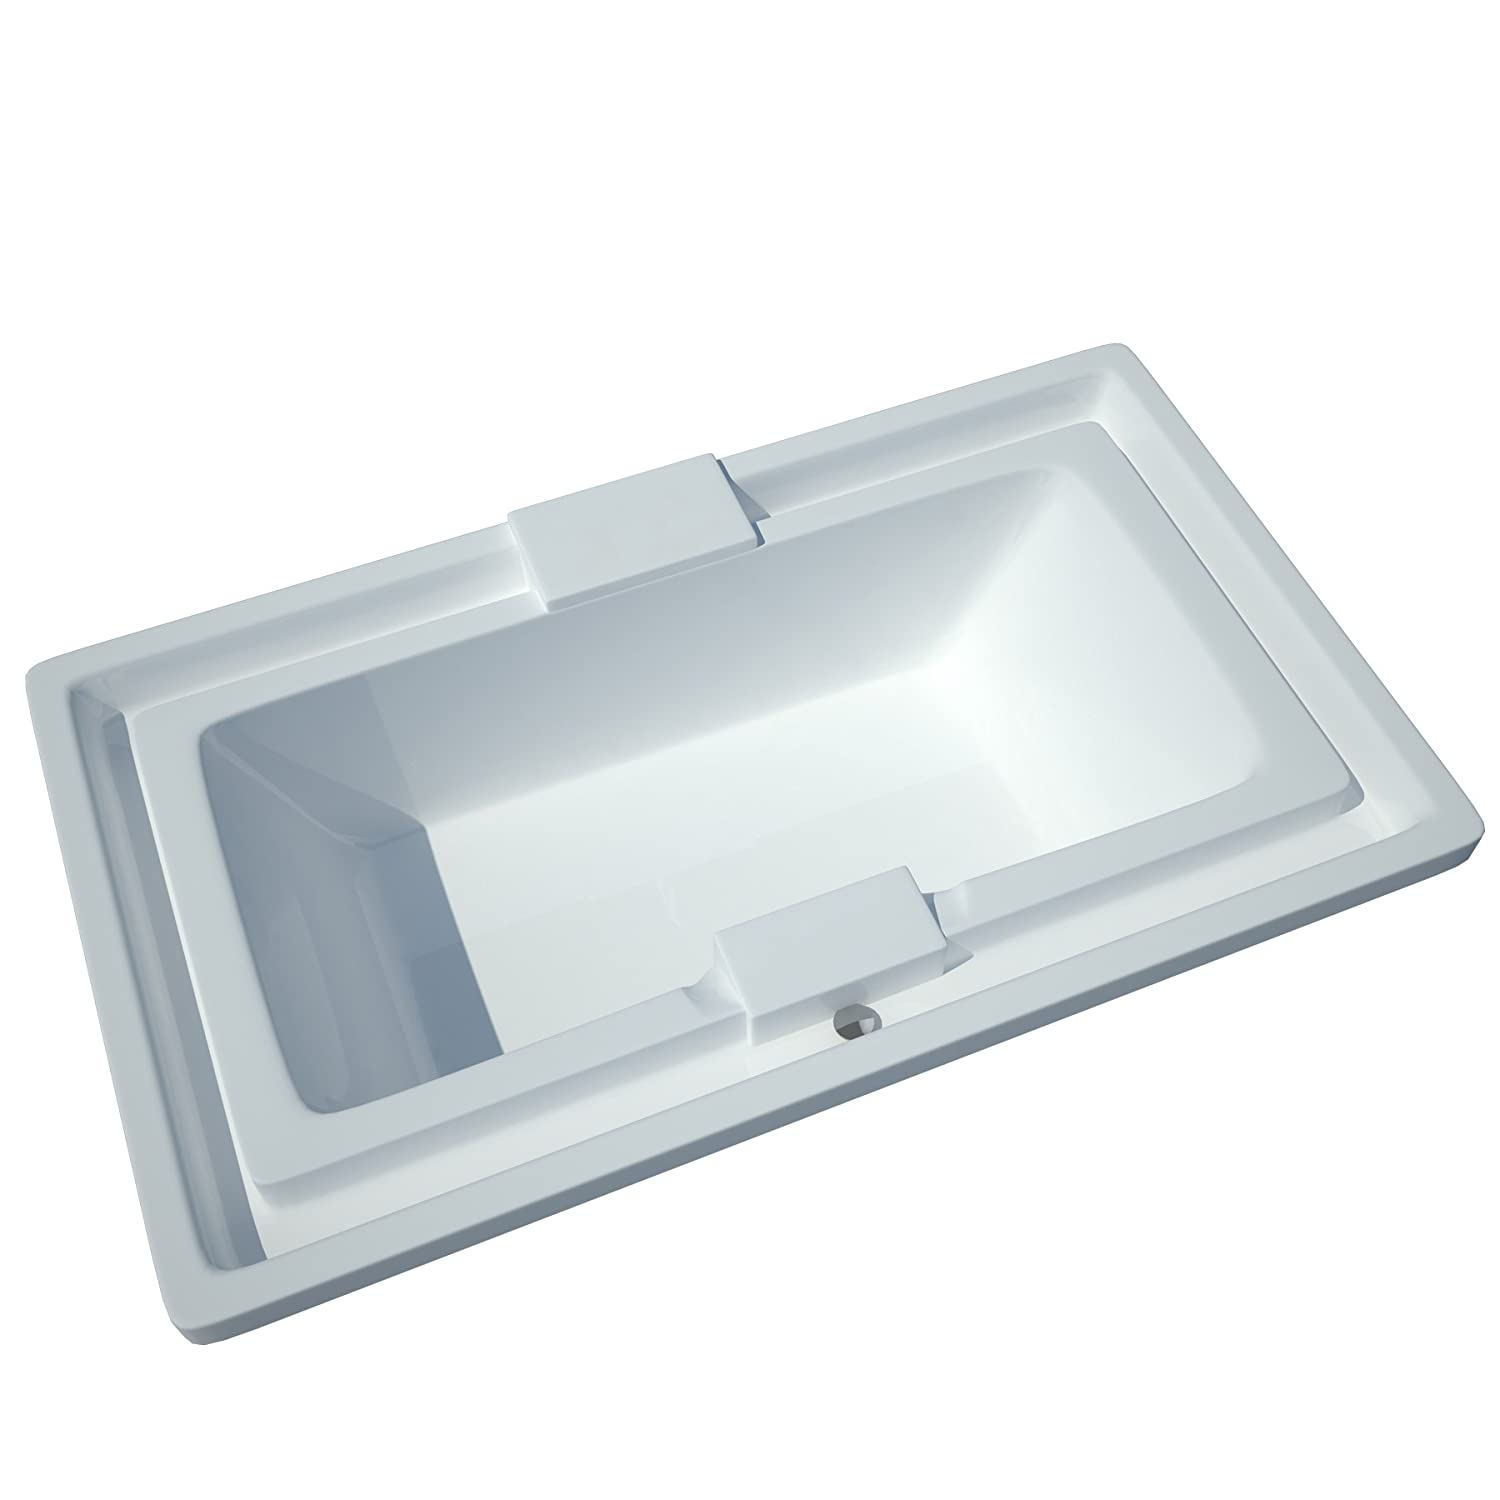 Sea Spa Tubs S4678I Tubs Infinity 46 by 78 by 23-Inch Endless Flow ...